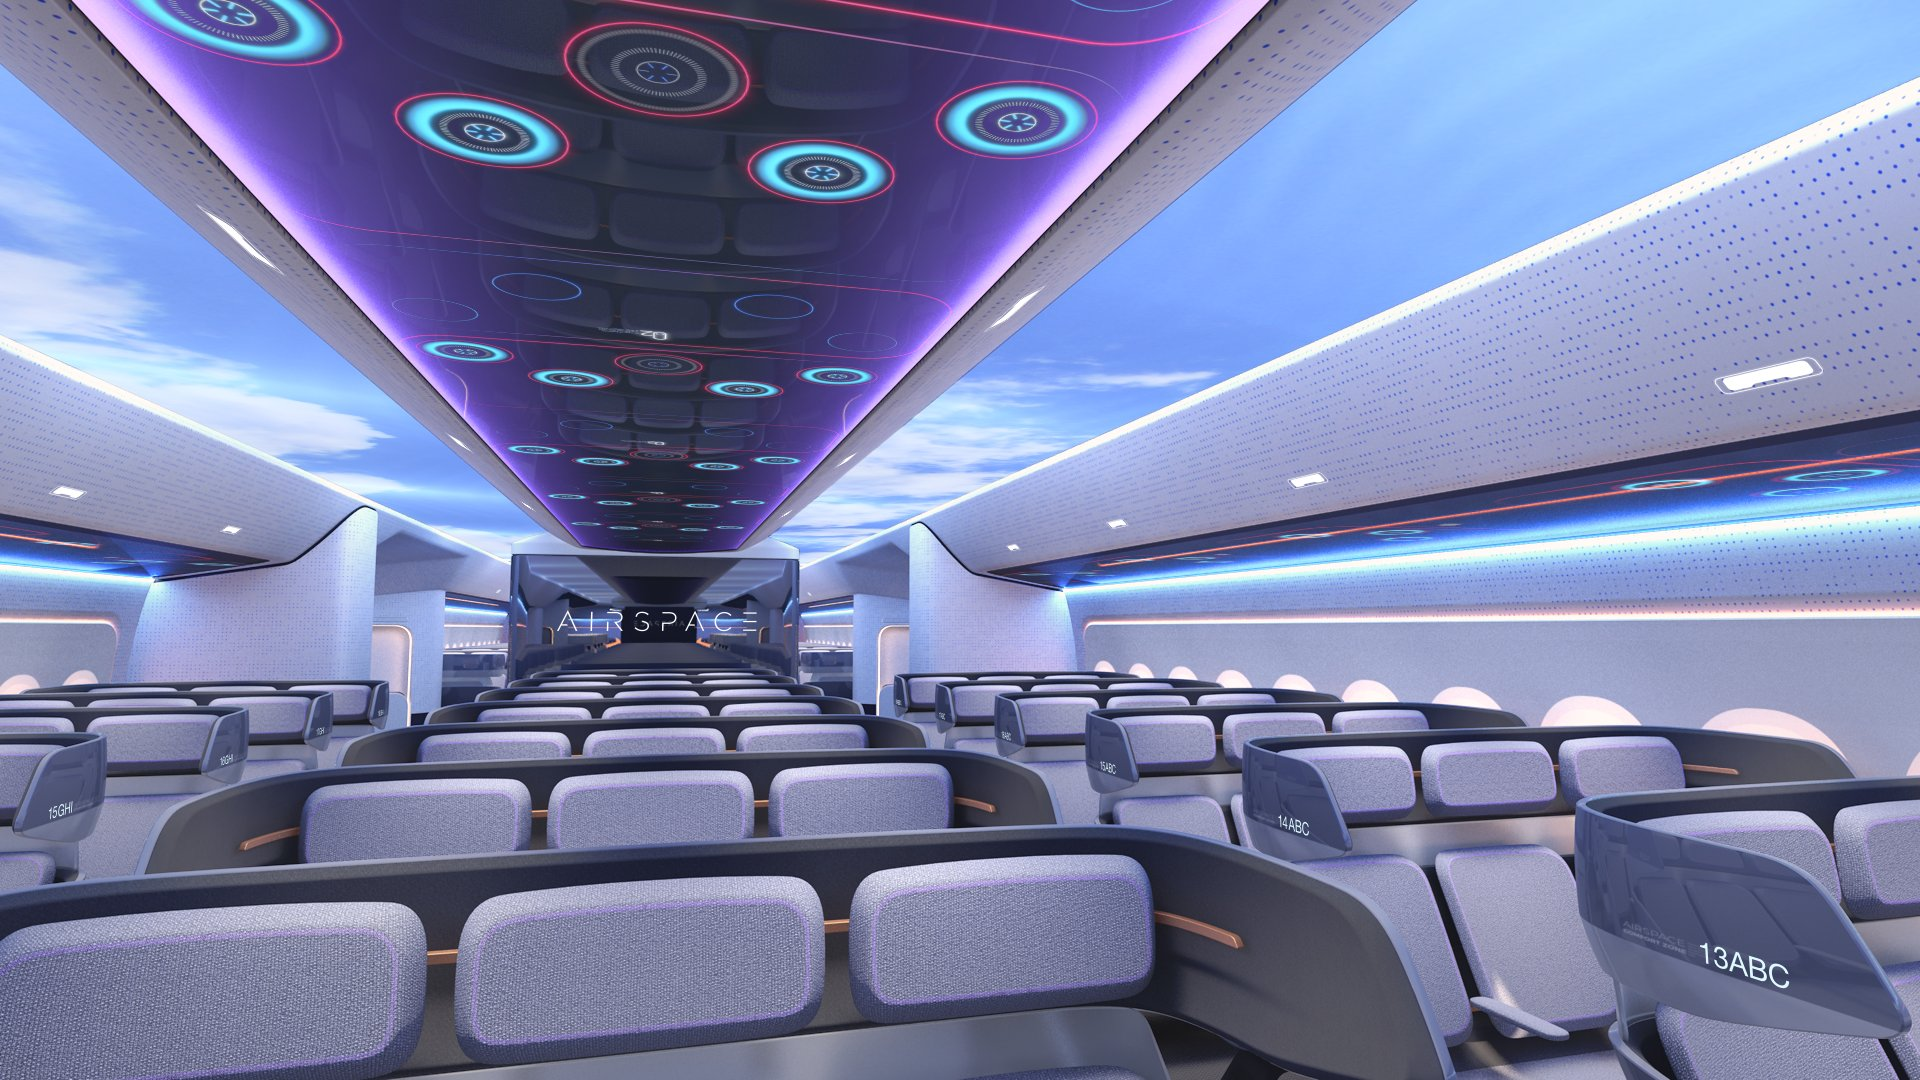 Airbus' Airspace Cabin Vision 2030 demonstrates how the company is shaping the future flying experience – inspired by leading airlines, benchmark tech companies and start-ups